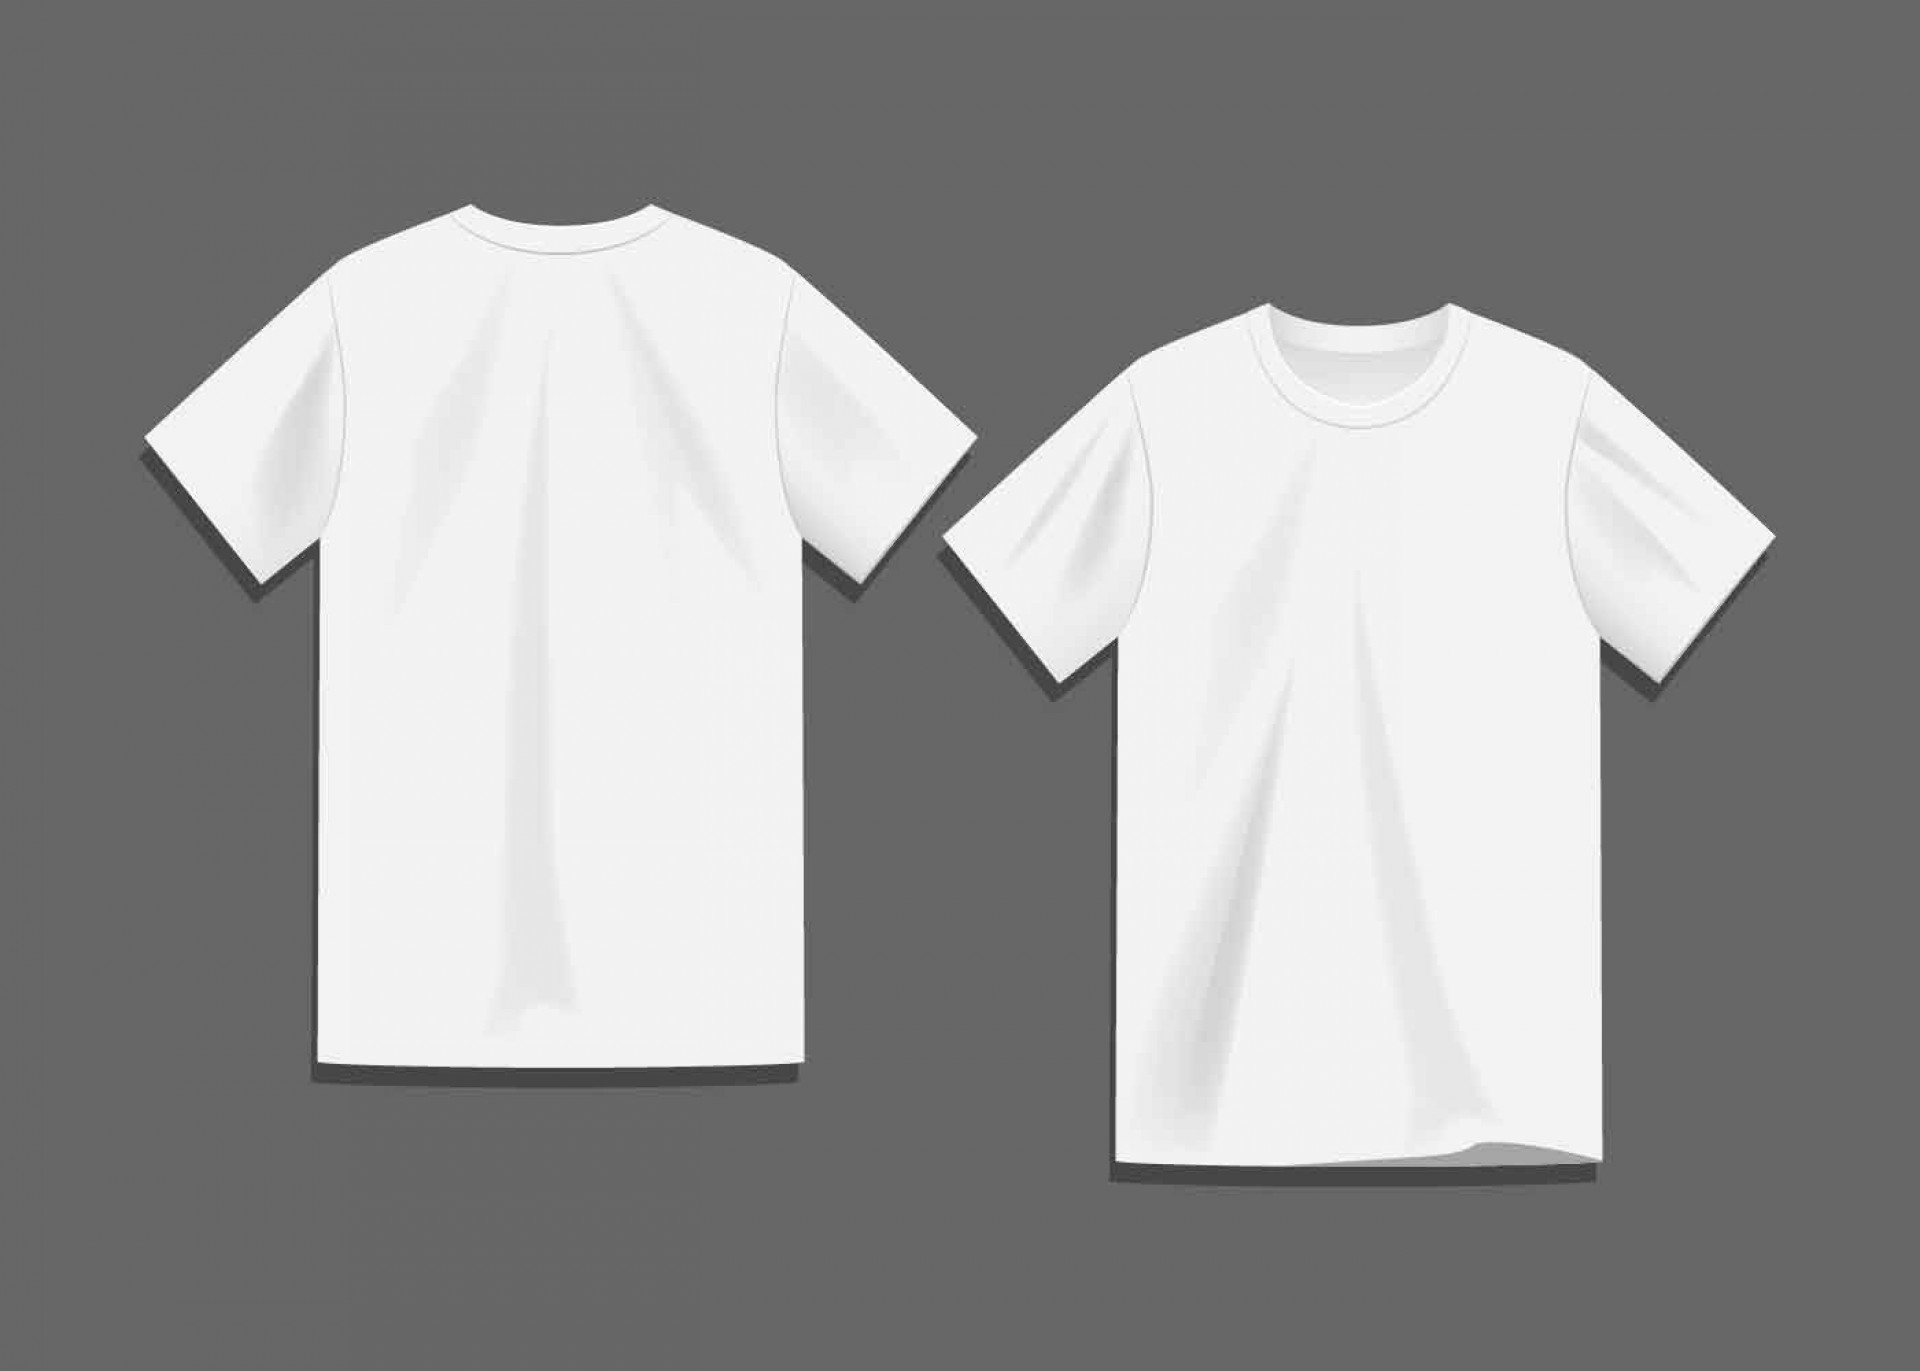 009 Beautiful Blank Tee Shirt Template High Resolution  T Design Pdf Free T-shirt Front And Back Download1920